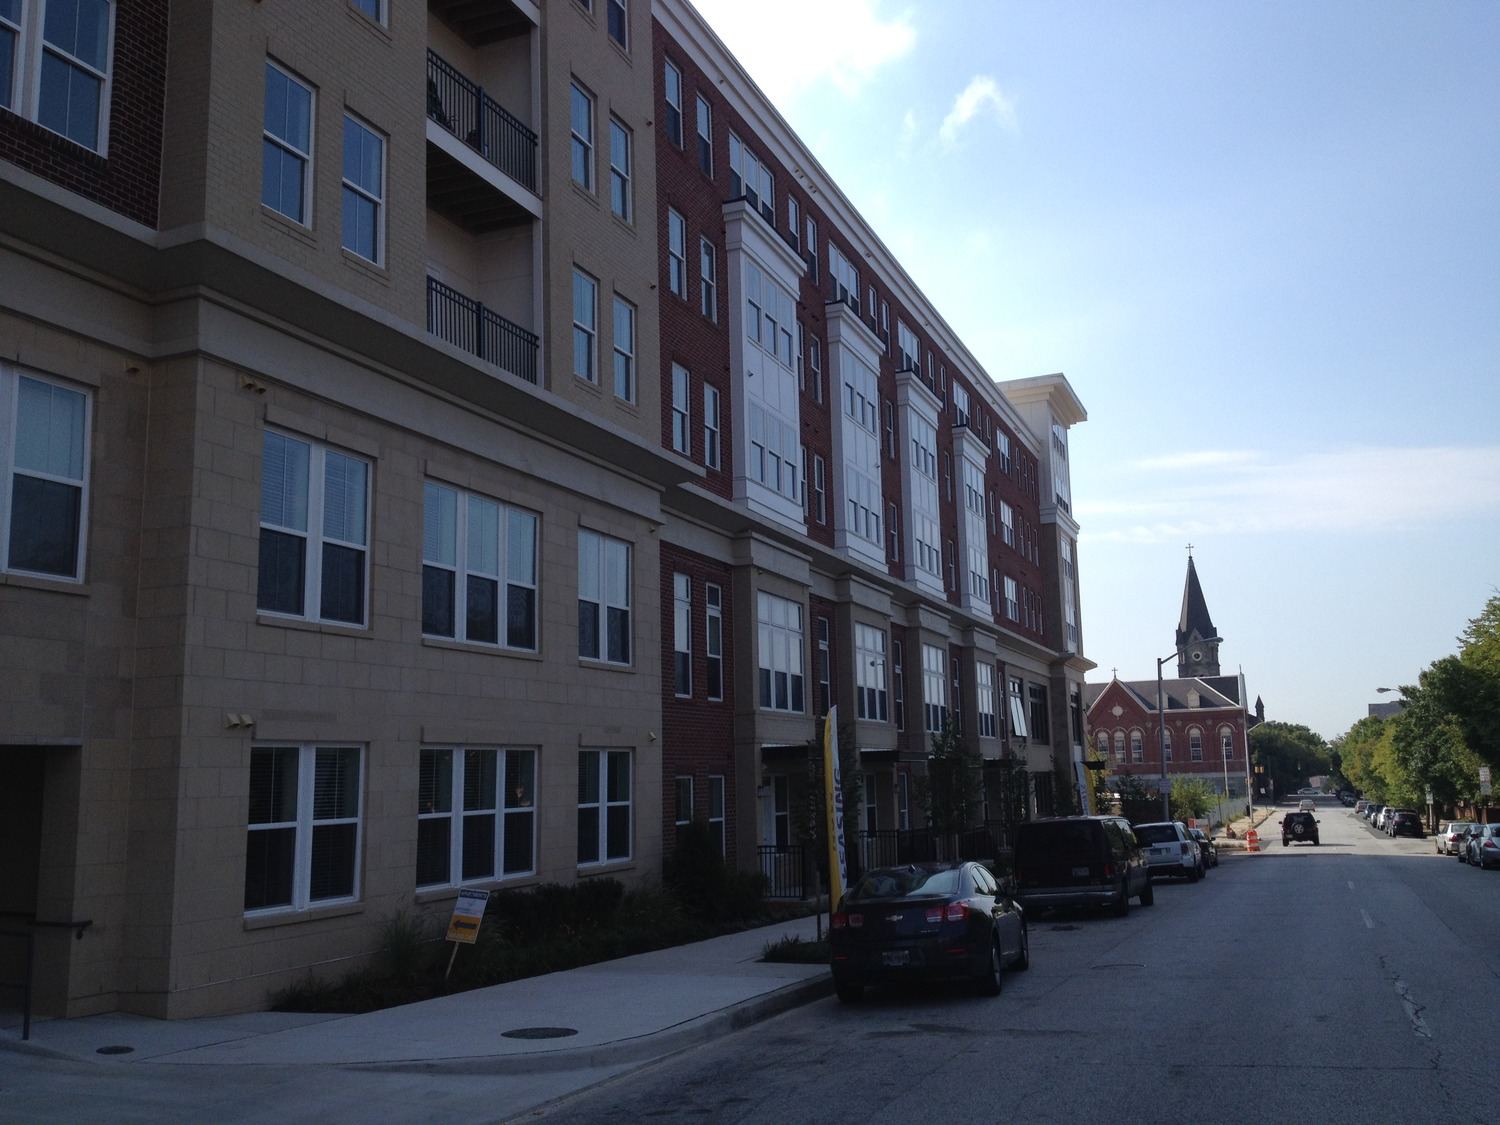 CBG builds Jefferson Square at Washington Hill, a 304-Unit Mixed-Use Apartment Community with Cast-in-Place Parking Garage in Baltimore, MD - Image #7